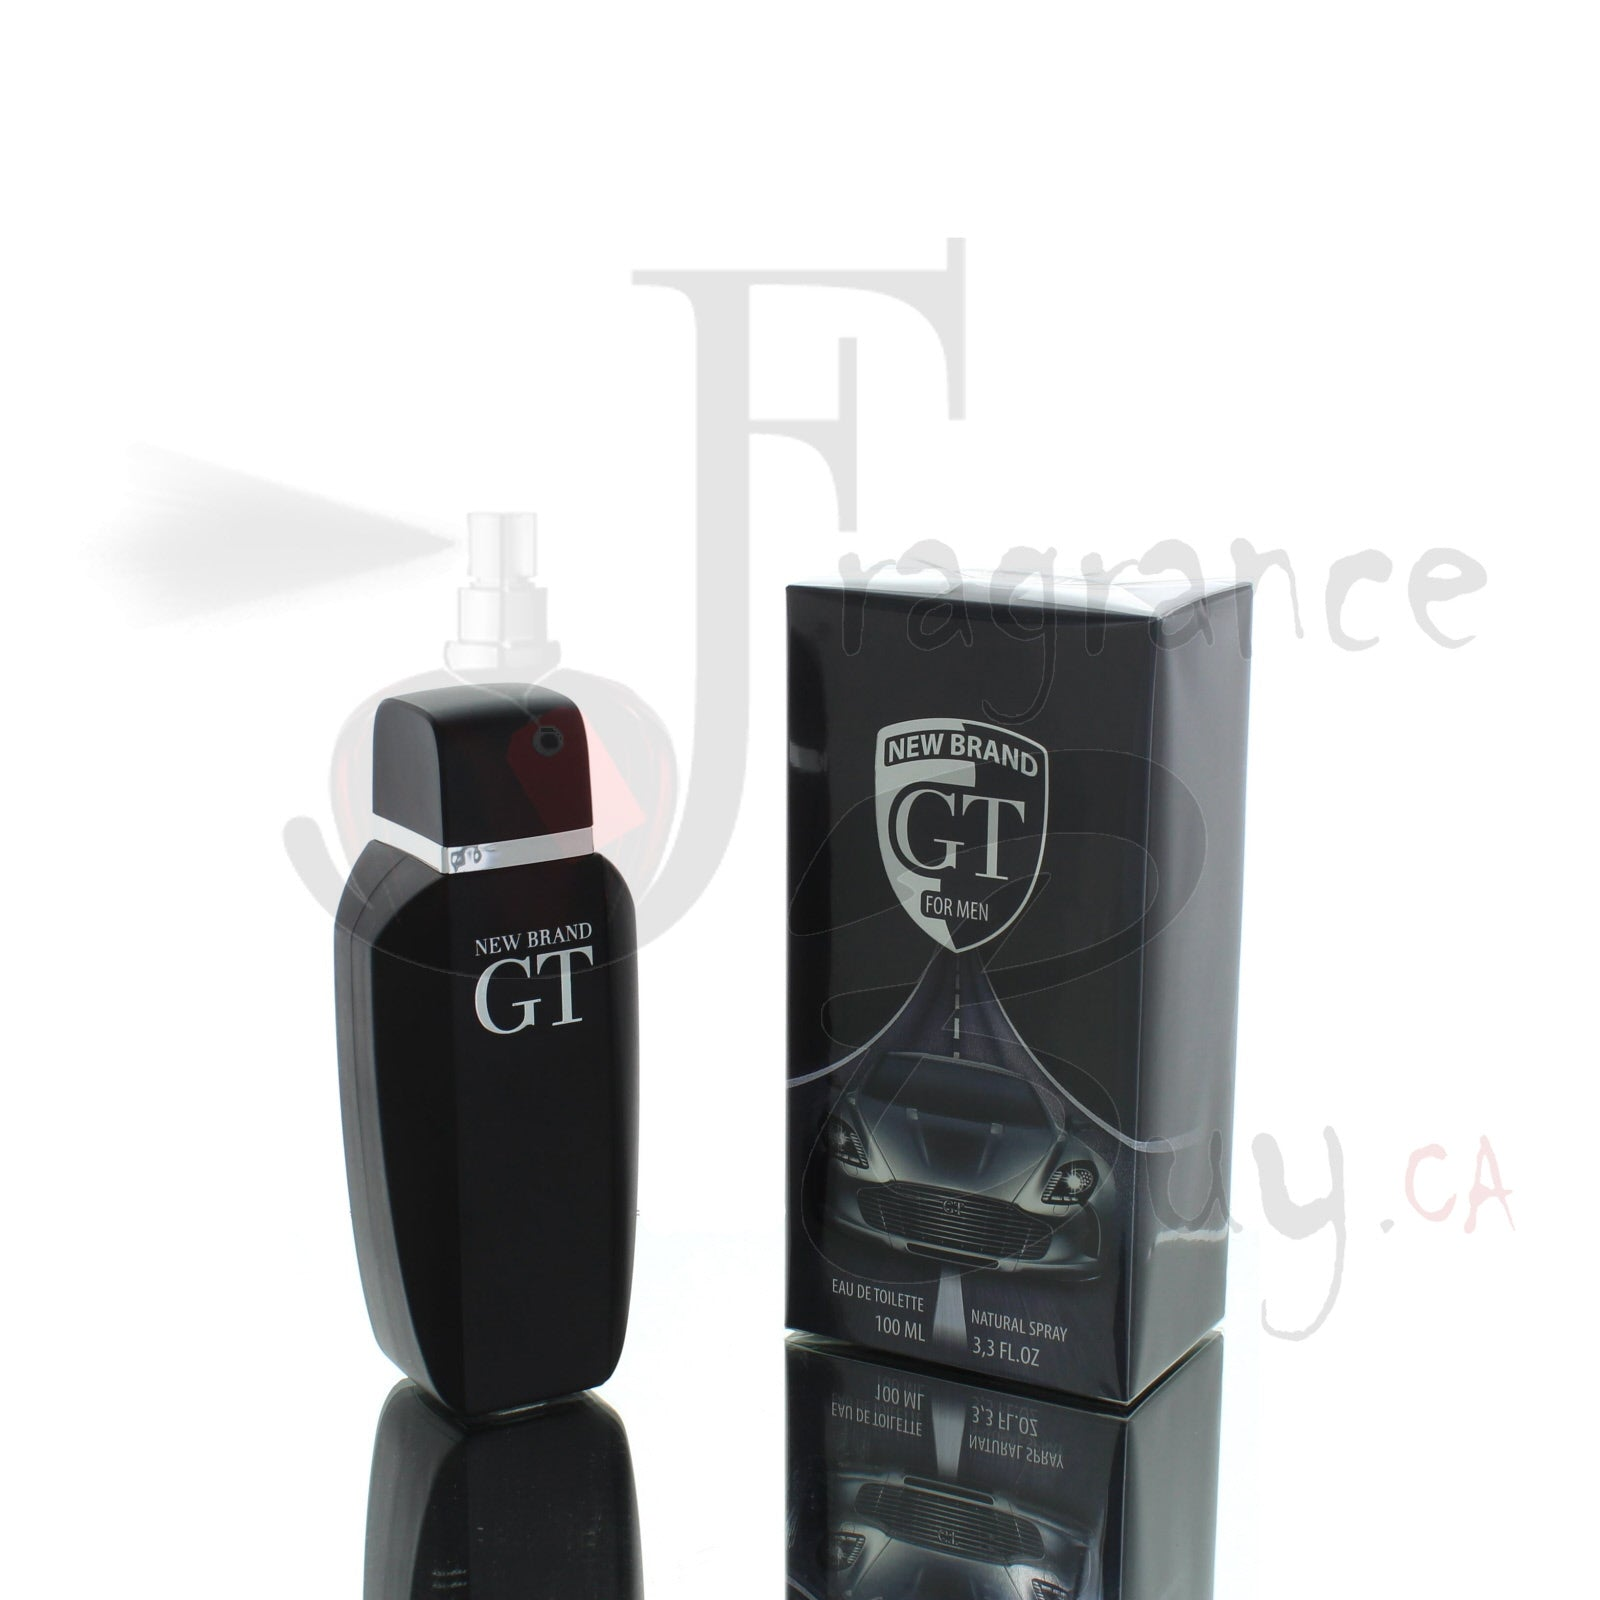 GT (The Gio Profumo Twist) by New Brand For Man